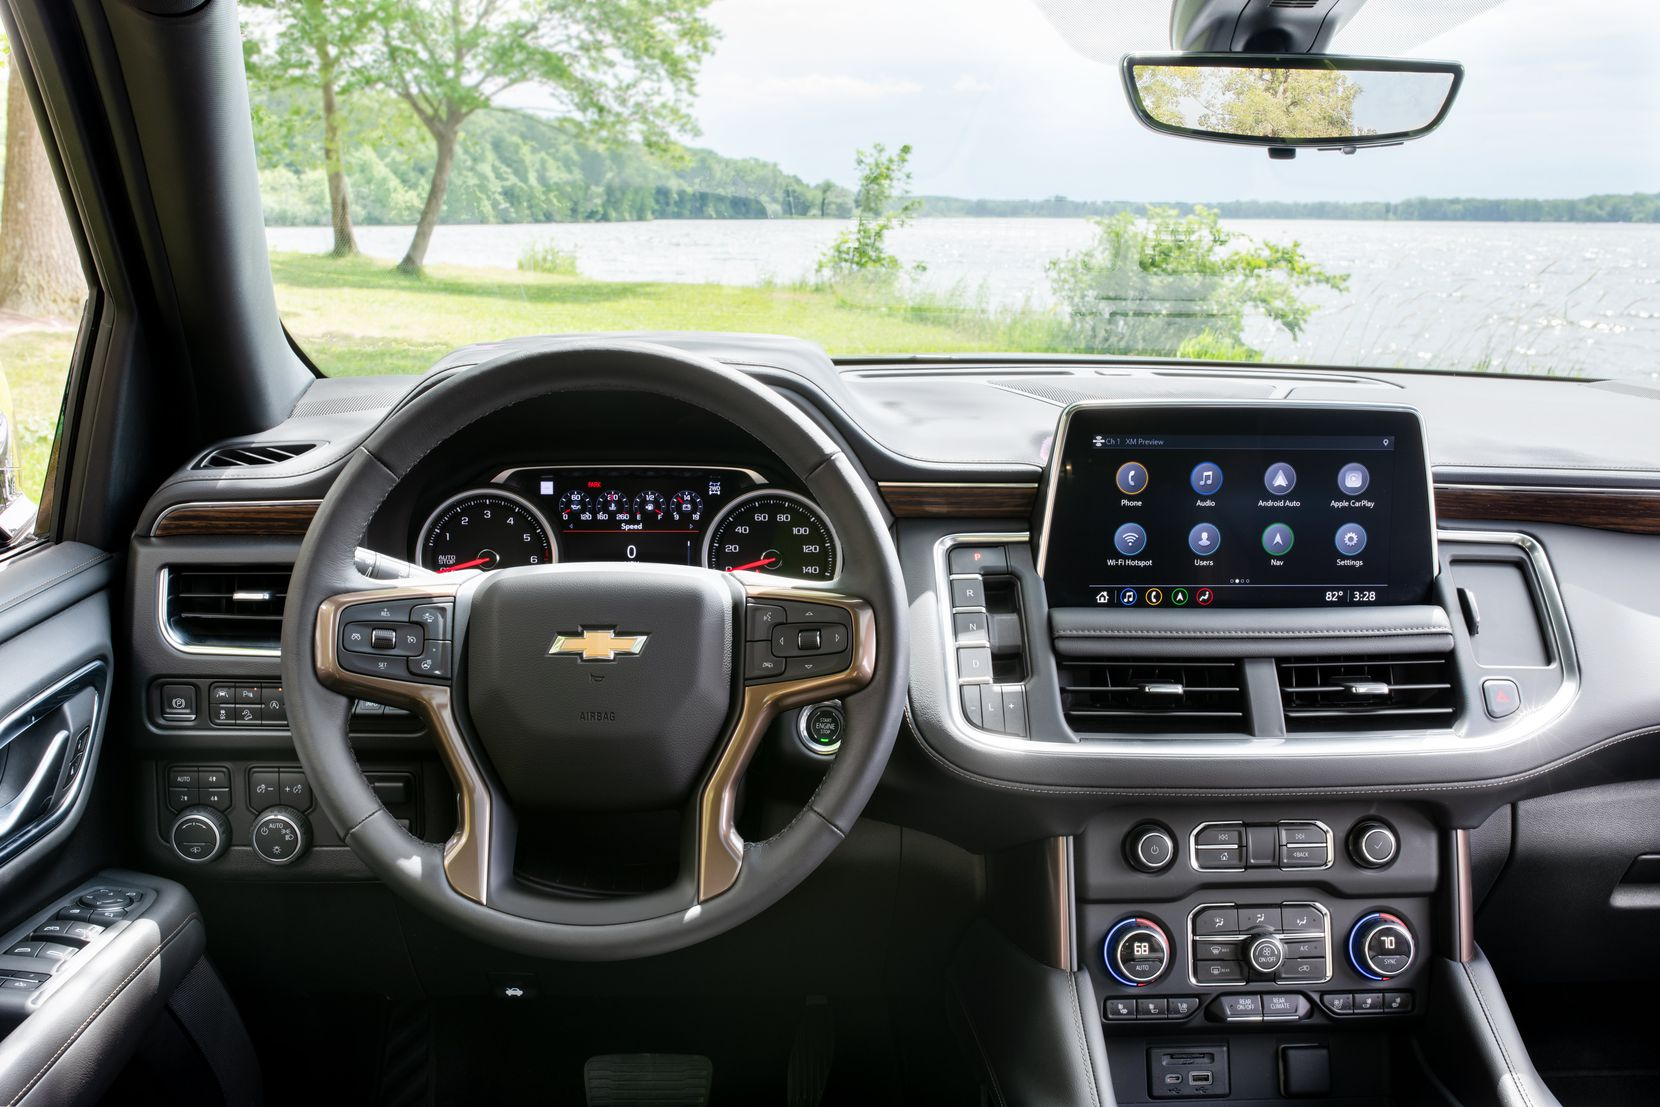 The Tahoe's interior has plenty of appealing features, including a panoramic sun roof and a motorized storage bin in the center console.